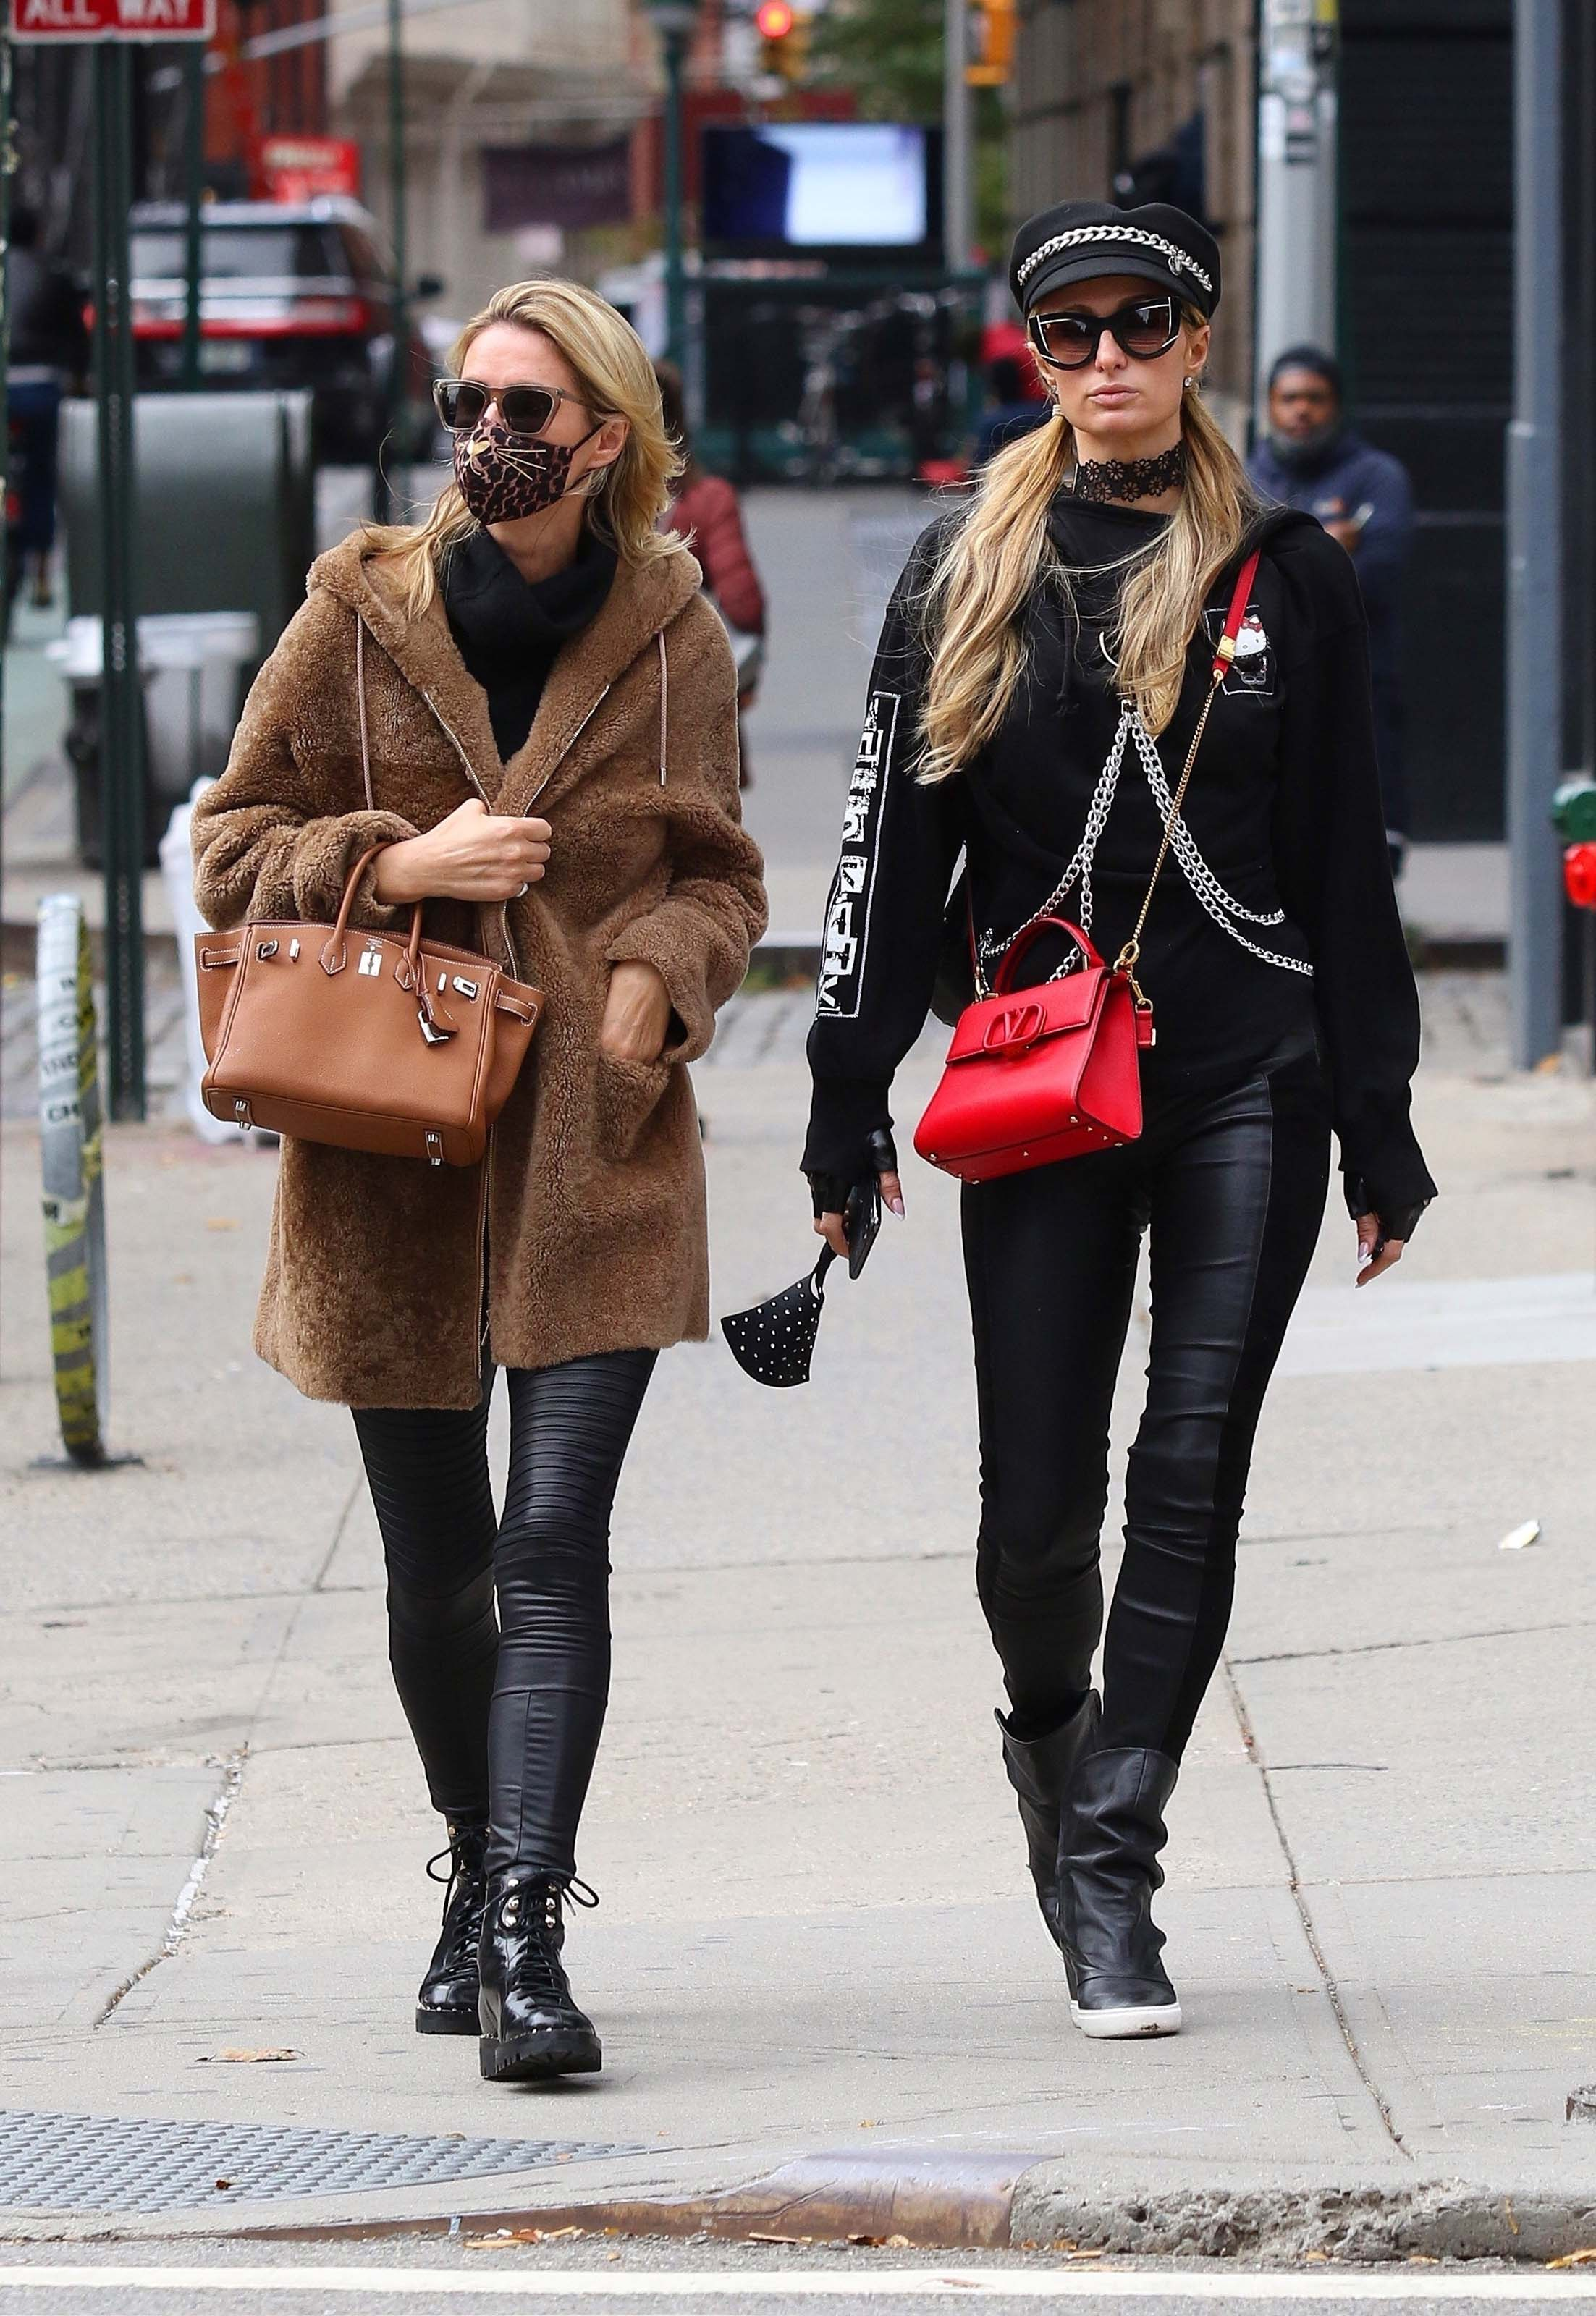 Paris Hilton & Nicky Hilton out shopping in Manhattan's Soho area